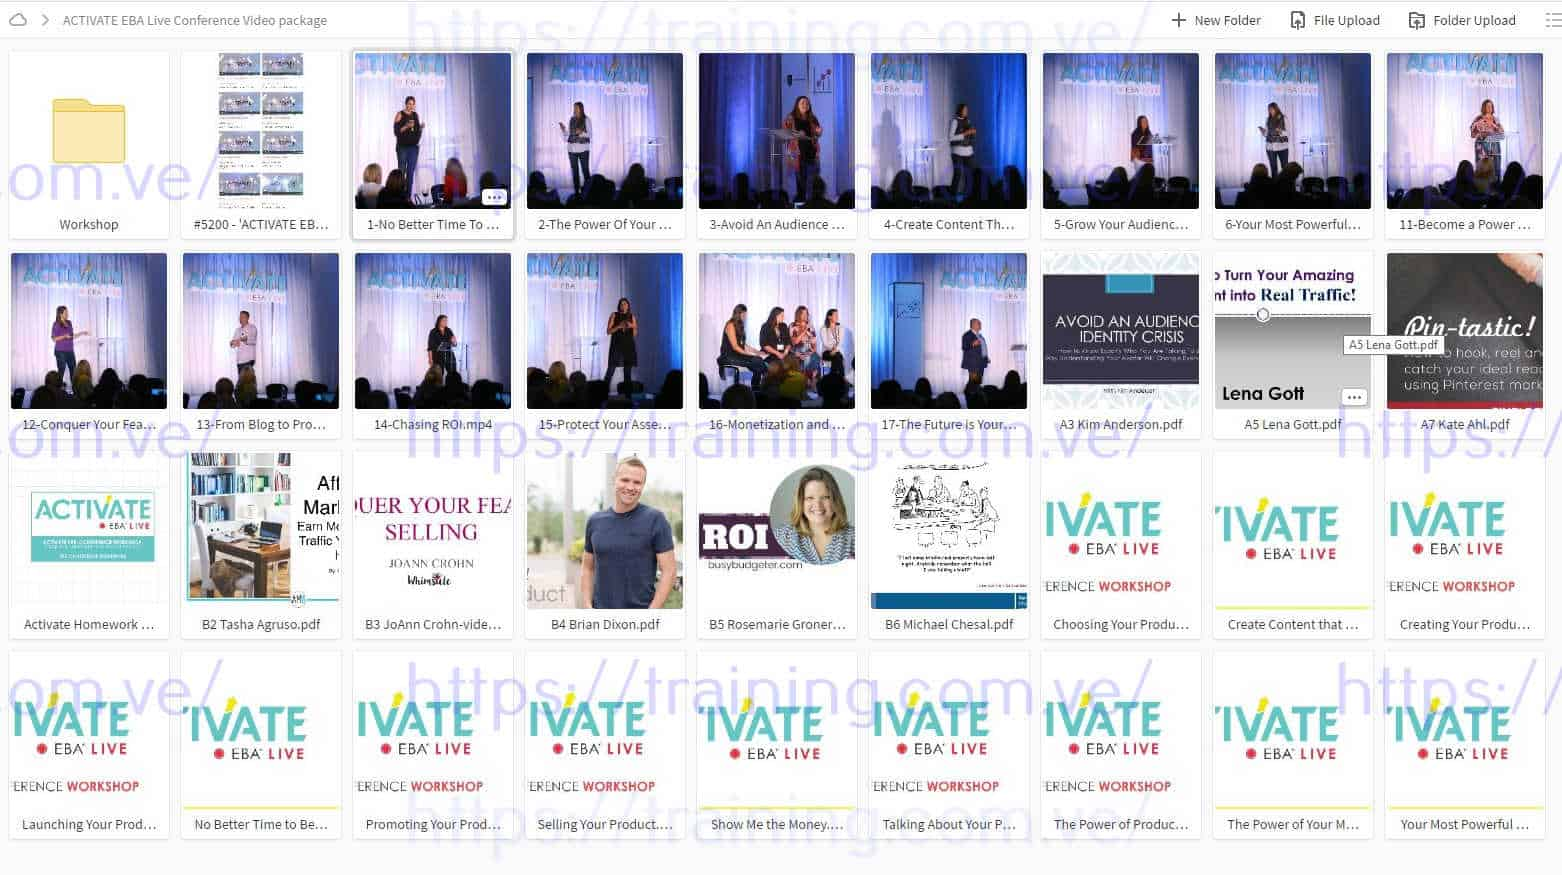 ACTIVATE 2017 EBA Live Conference Video package MAIN EVENT + WORKSHOP Torrent